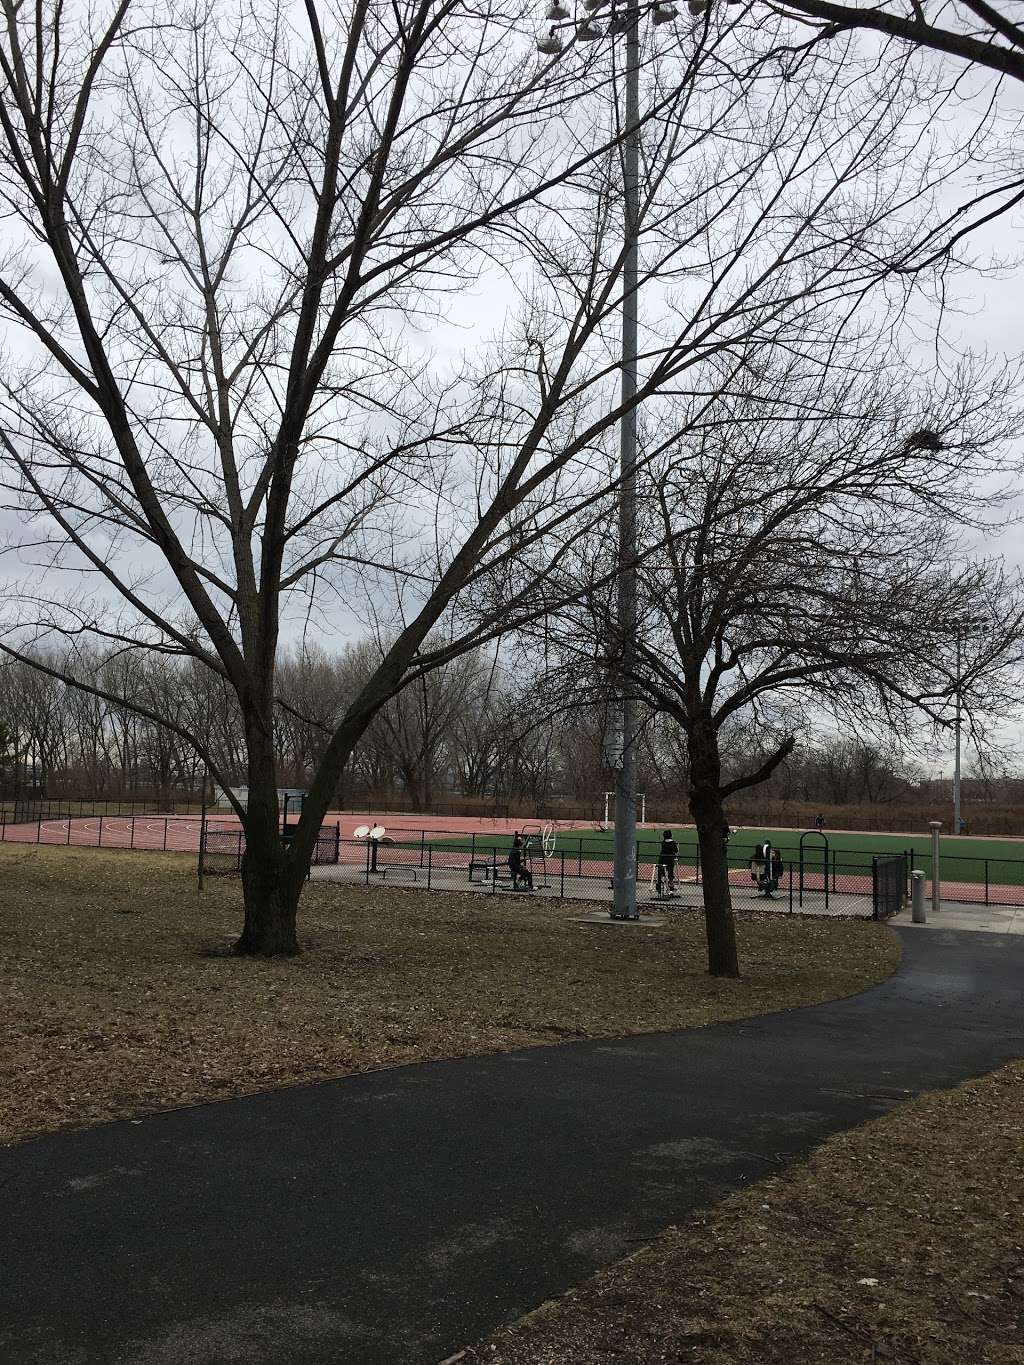 Soundview Park Outdoor Fitness Equipment - gym    Photo 5 of 10   Address: Lafayette Ave, Bronx, NY 10473, USA   Phone: (212) 639-9675